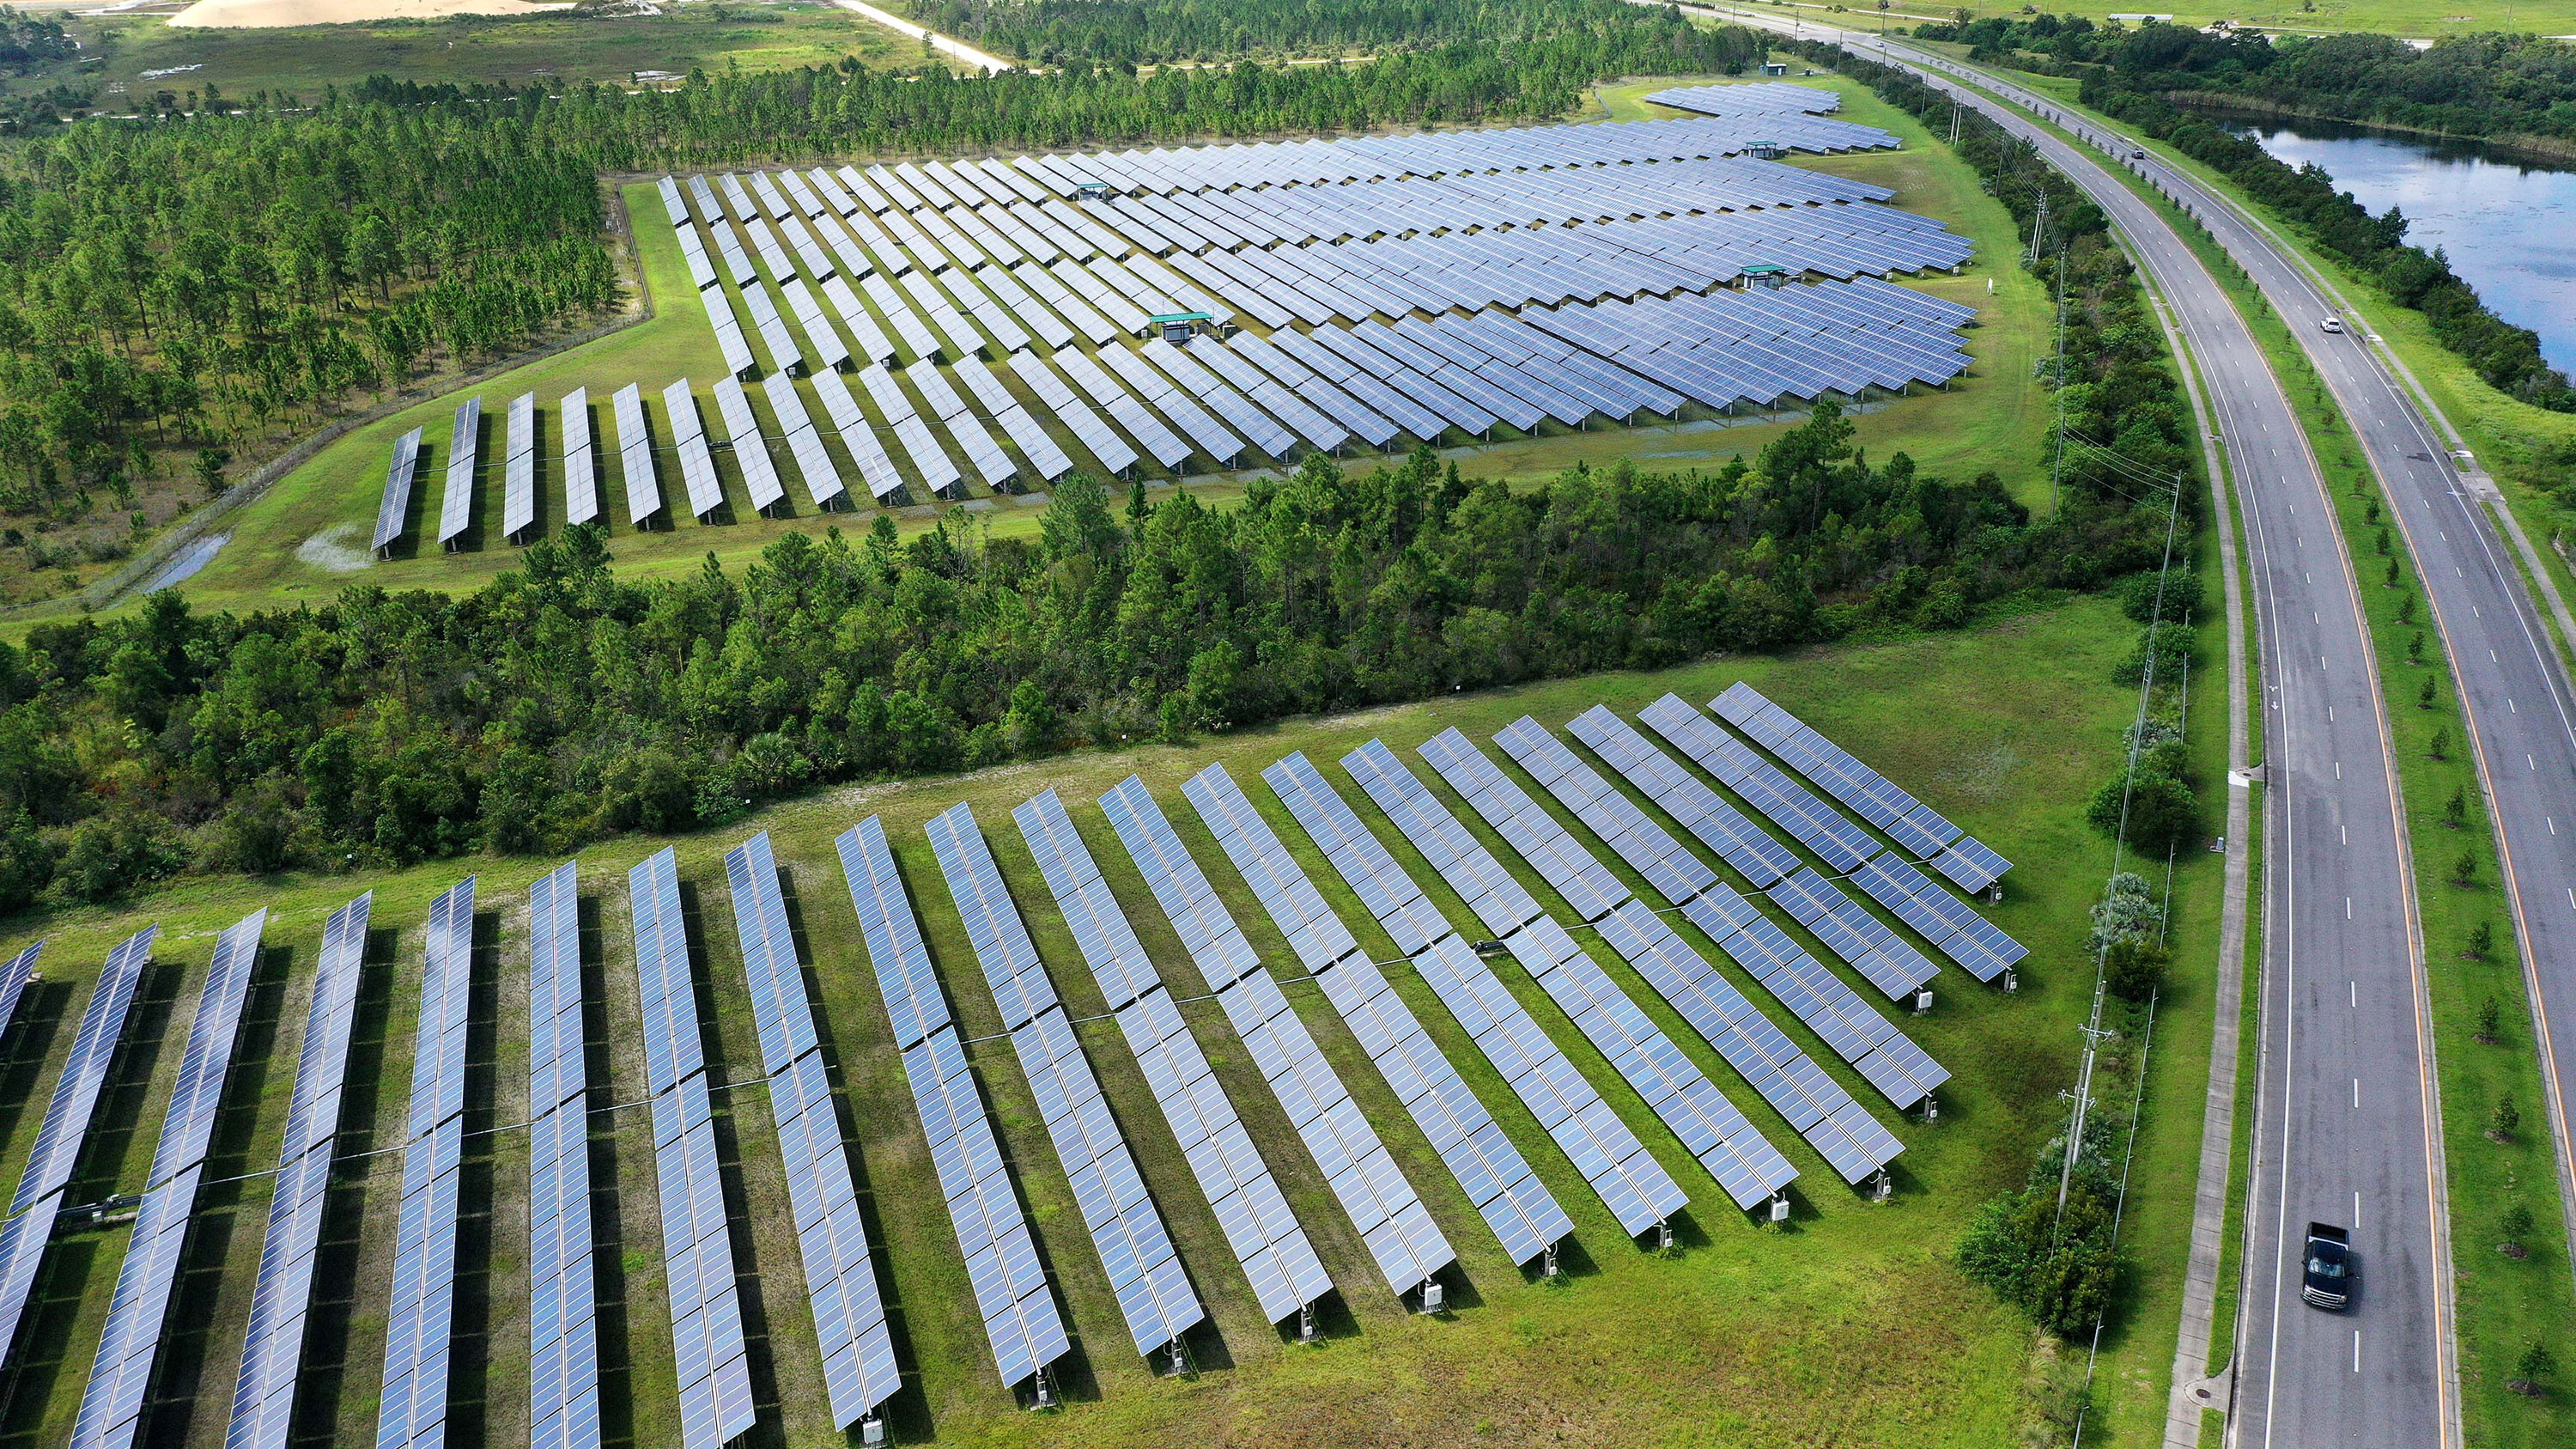 5 alternative energy sources to speed our transition away from fossil fuels